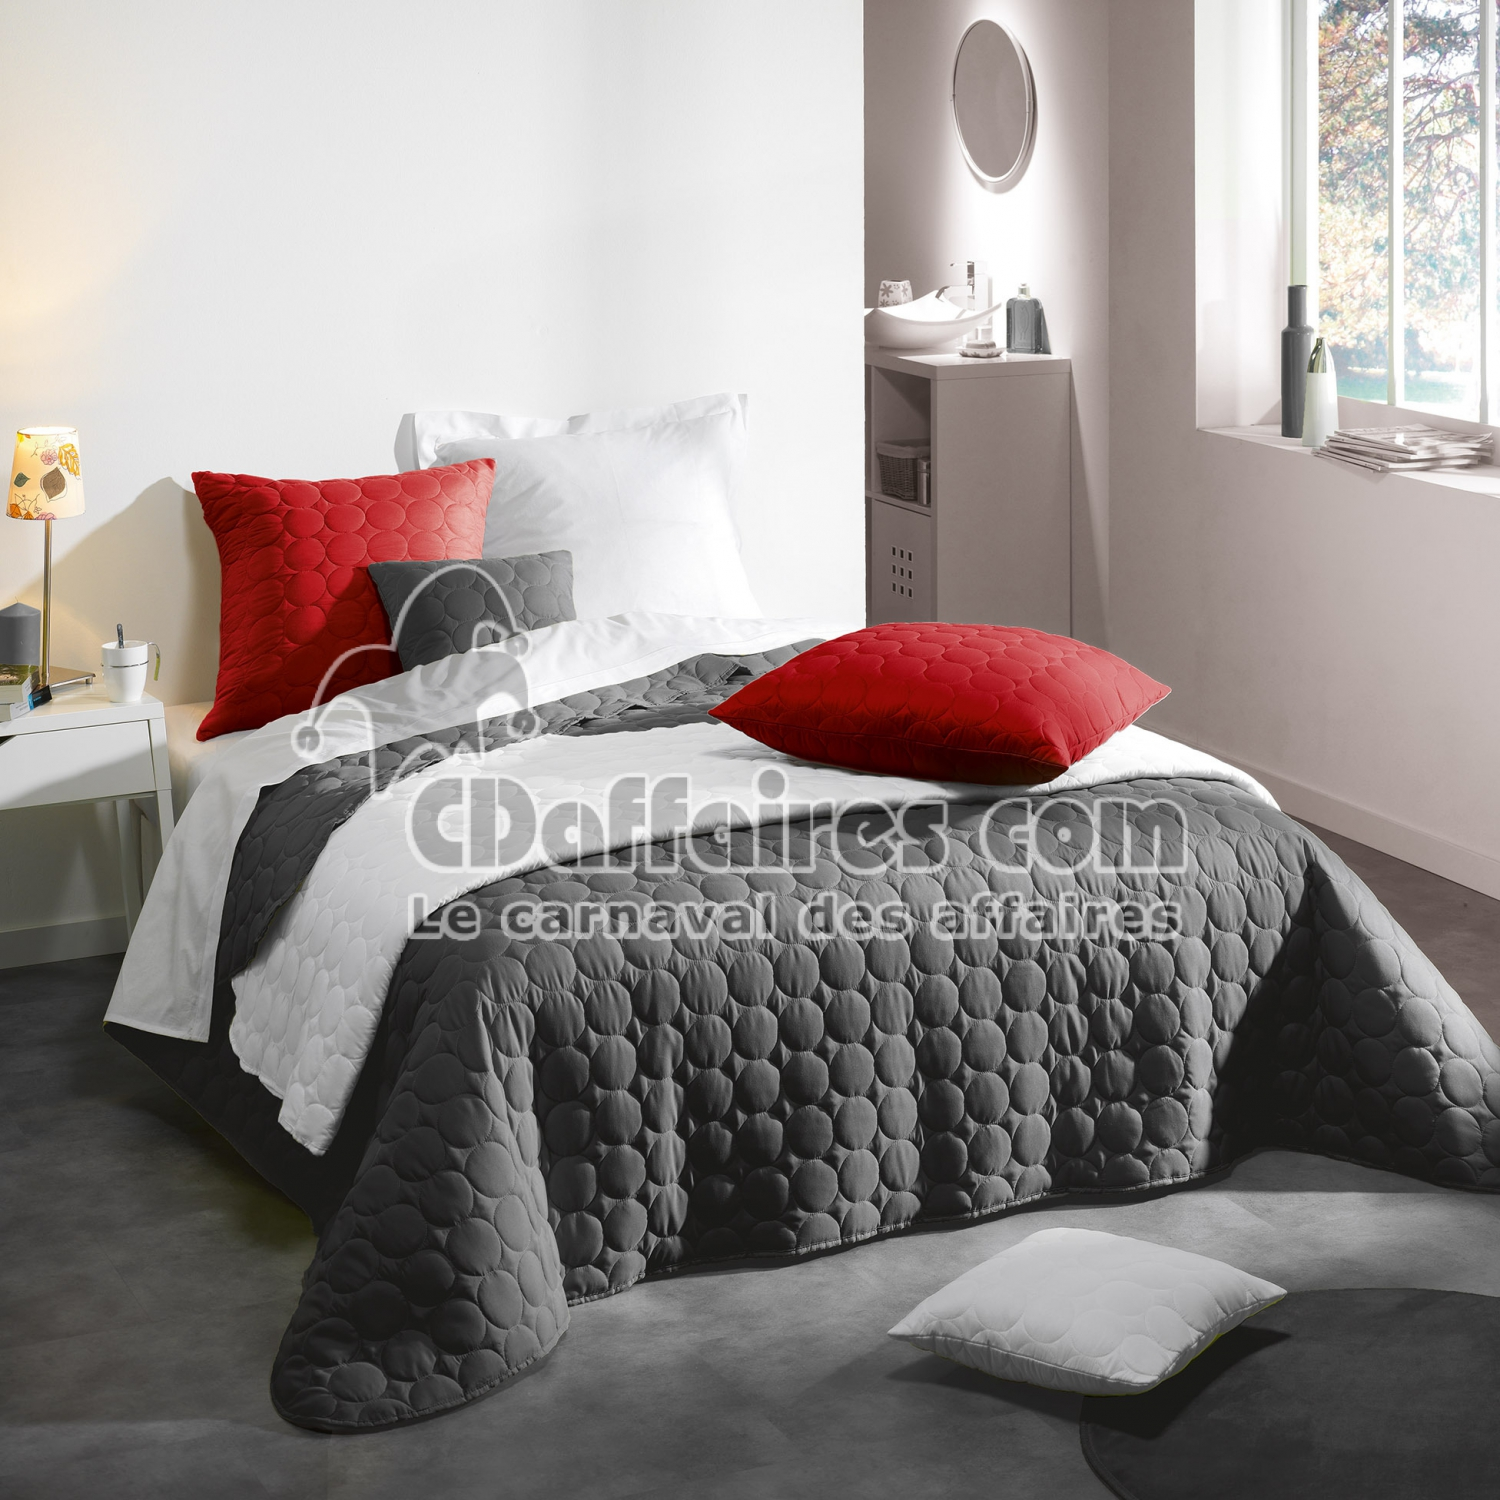 couvre lit 2 pers matelasse 220 x 240 cm microfibre unie candy anthracite cdaffaires. Black Bedroom Furniture Sets. Home Design Ideas